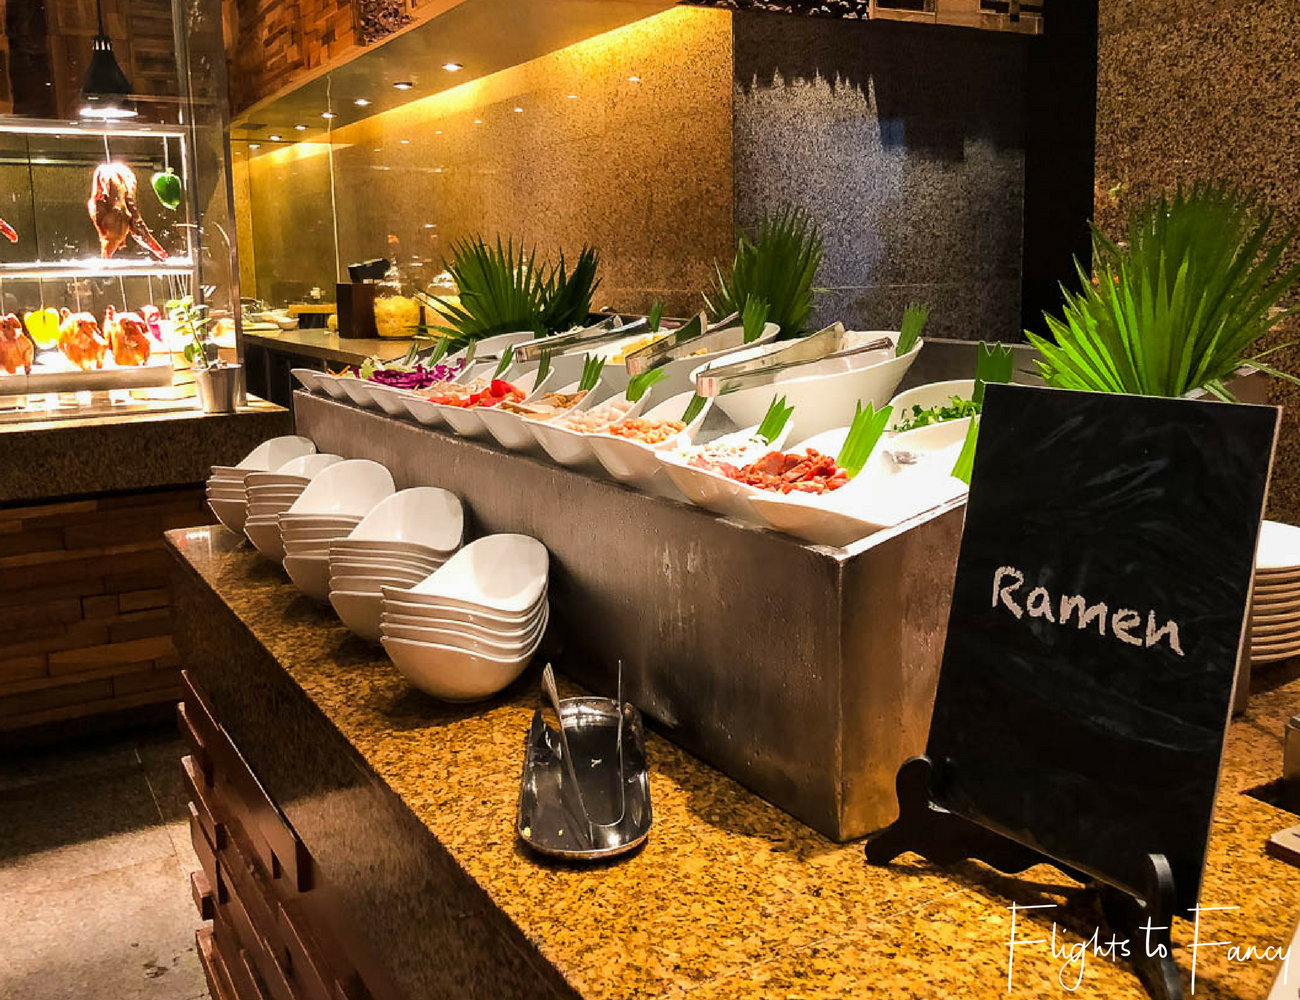 Hotel near SM Cebu City - Radisson Blue Cebu Dinner Buffet Feria Restaurant Ramen Station by Flights to Fancy